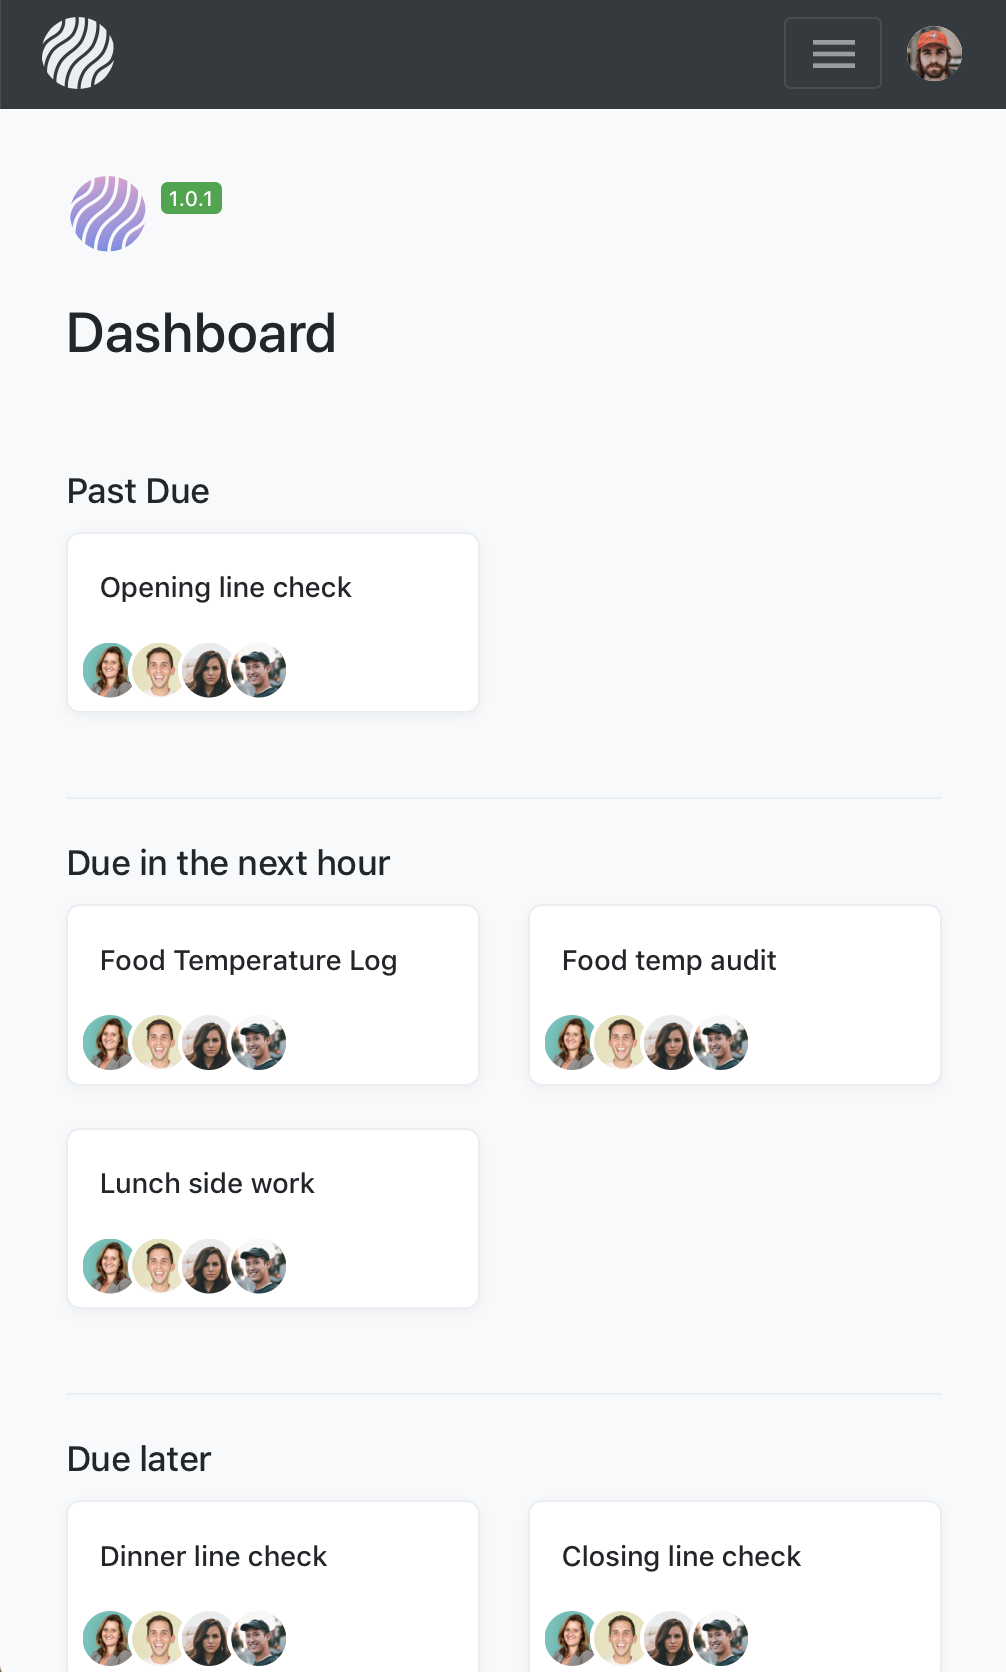 LineCheck - Schedule and monitor your restaurant's checklists and food temperature logs.